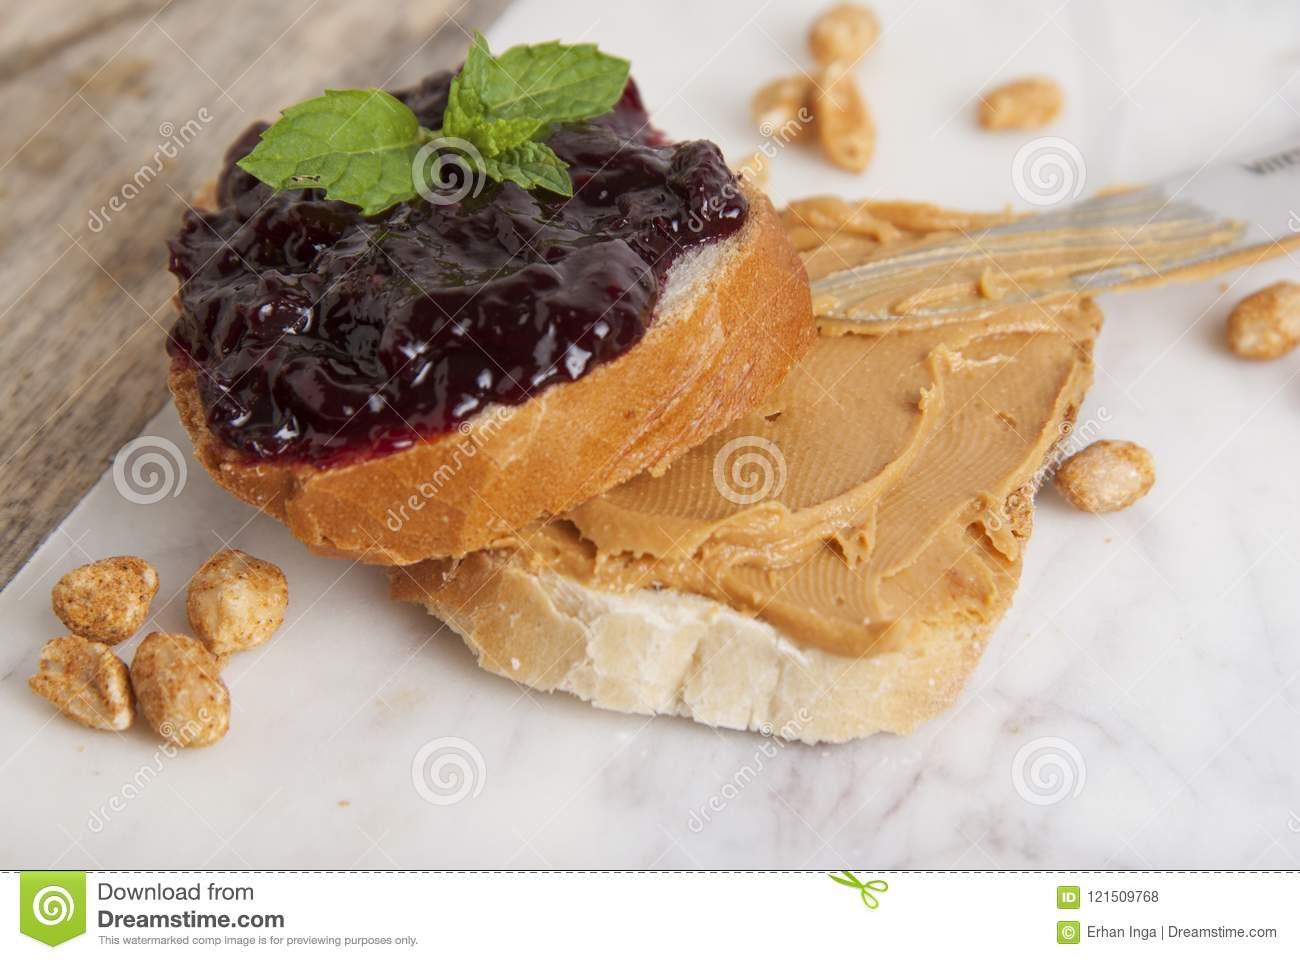 Peanut butter and raspberry jelly sandwich on white background. Sweet breakfast or snack. Close up.